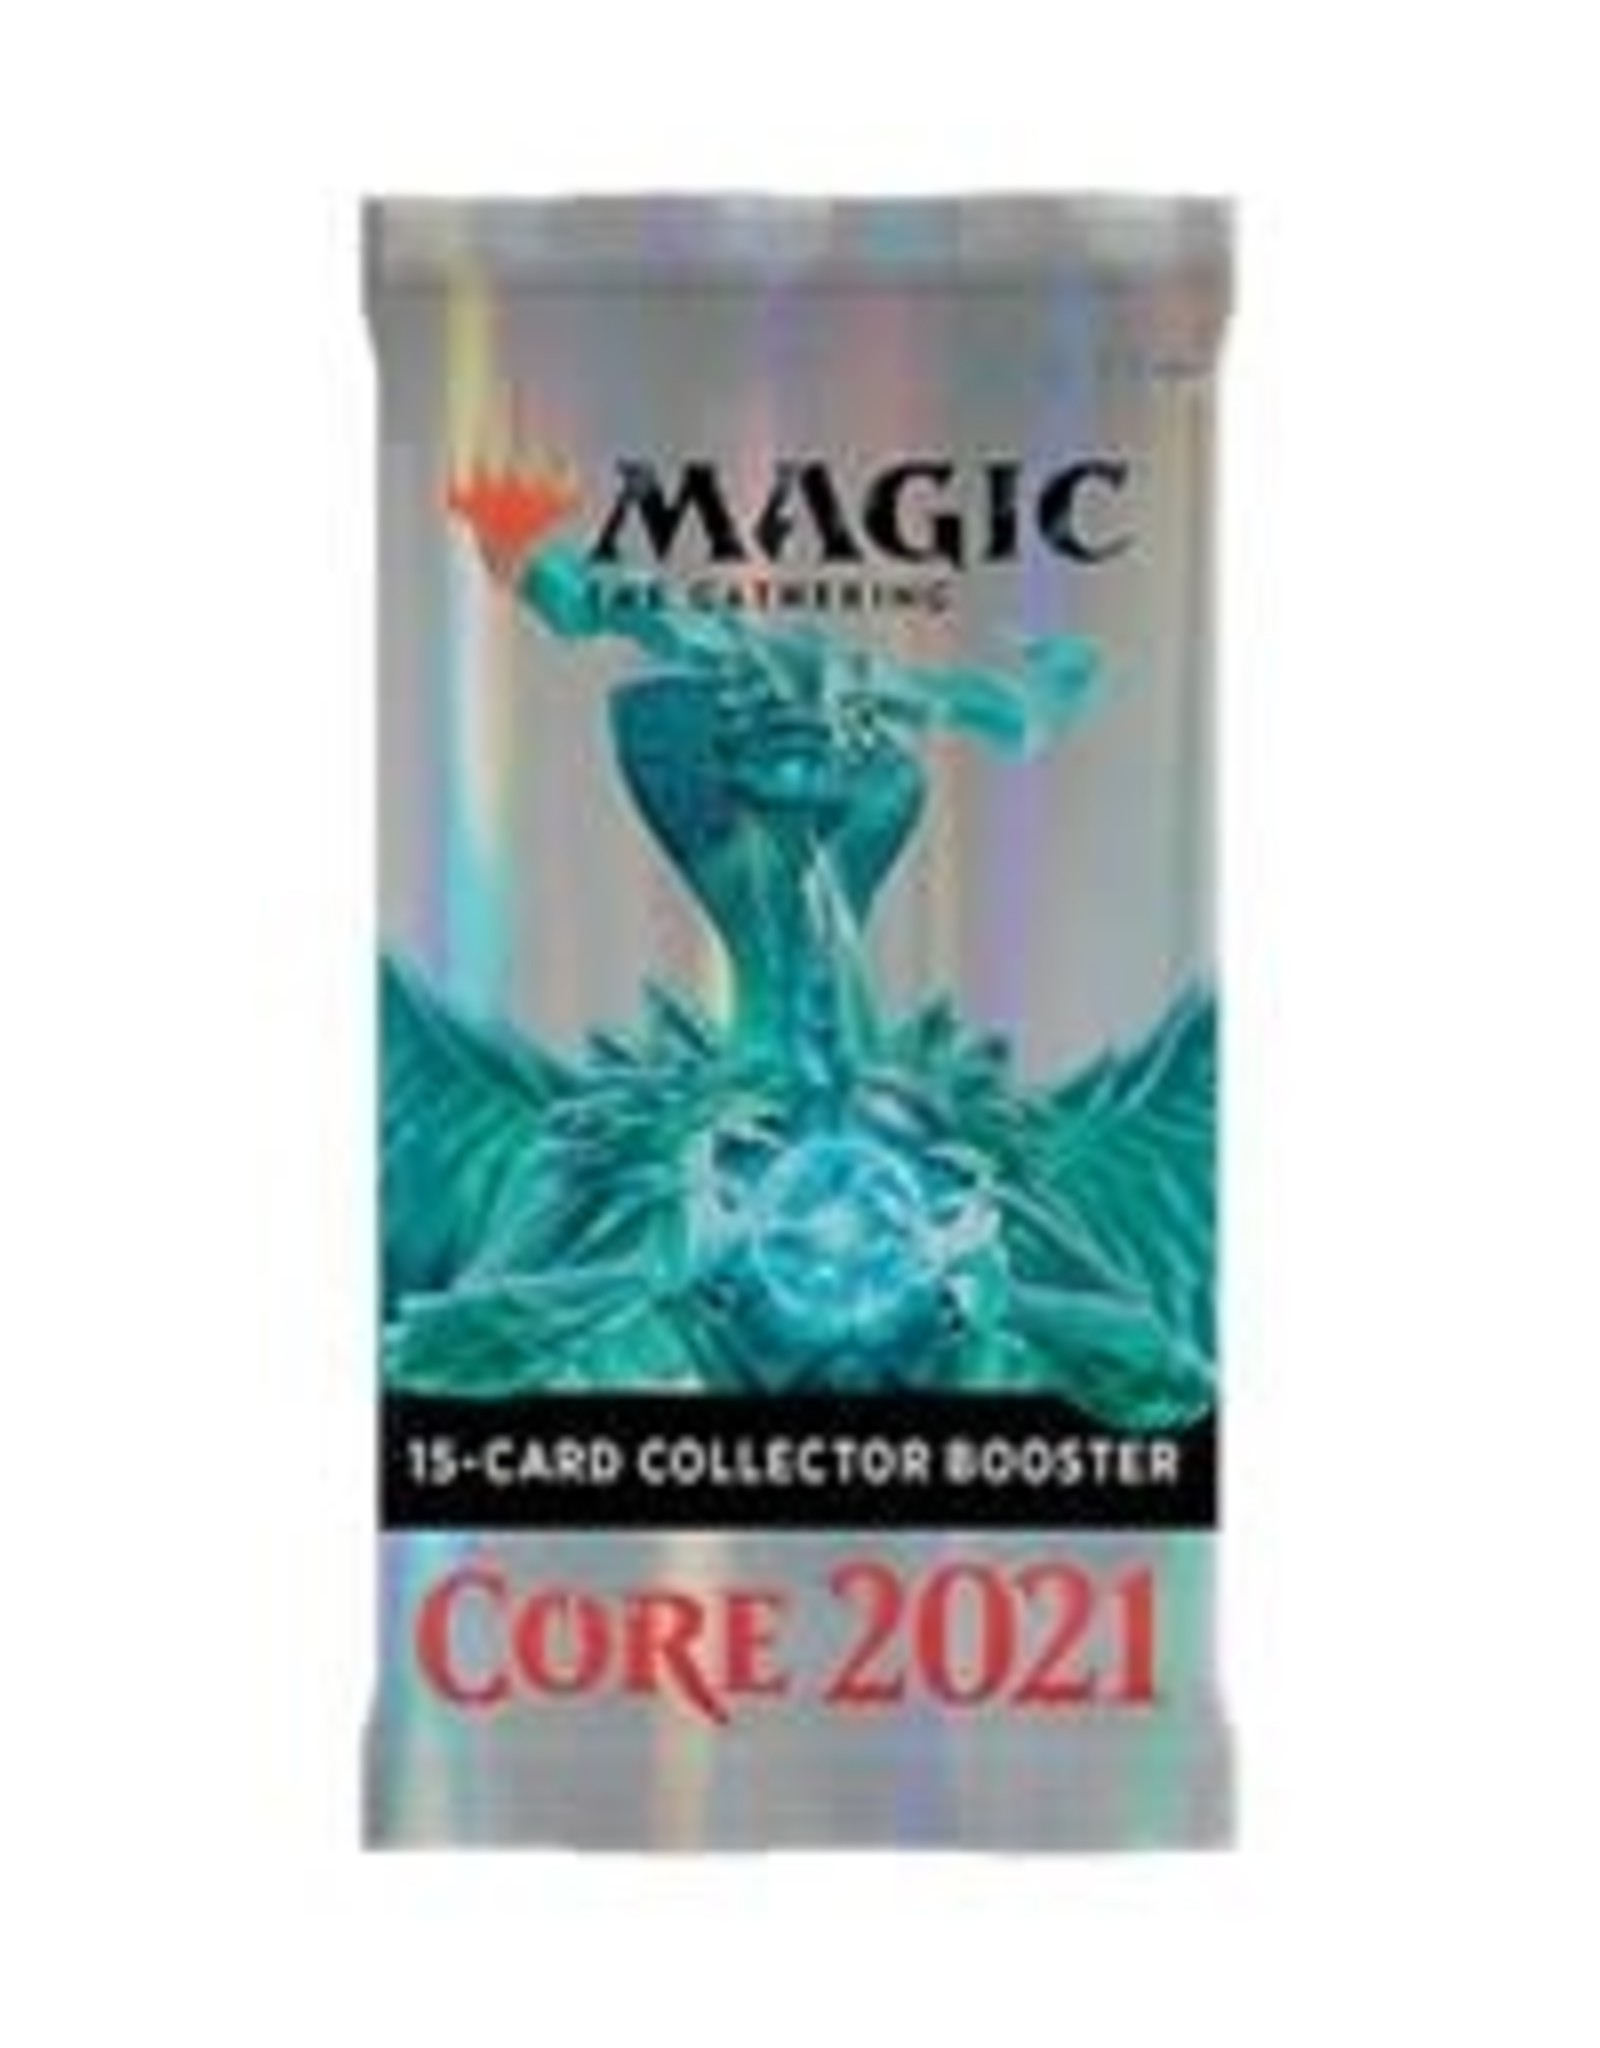 Wizards of the Coast Core 2021 Collector's Booster Pack